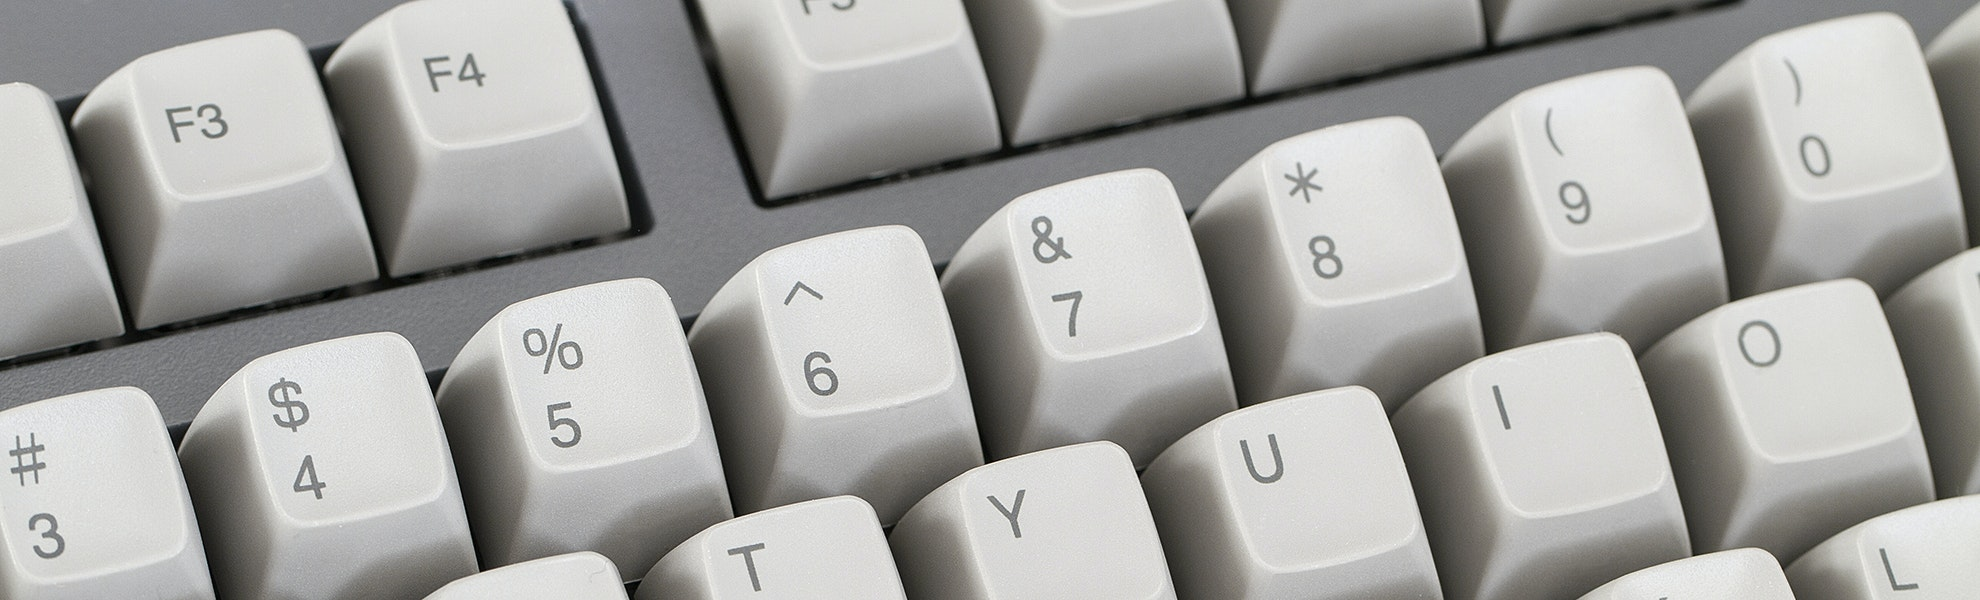 Topre Realforce 104UG Keyboard With M-Duo IEMs